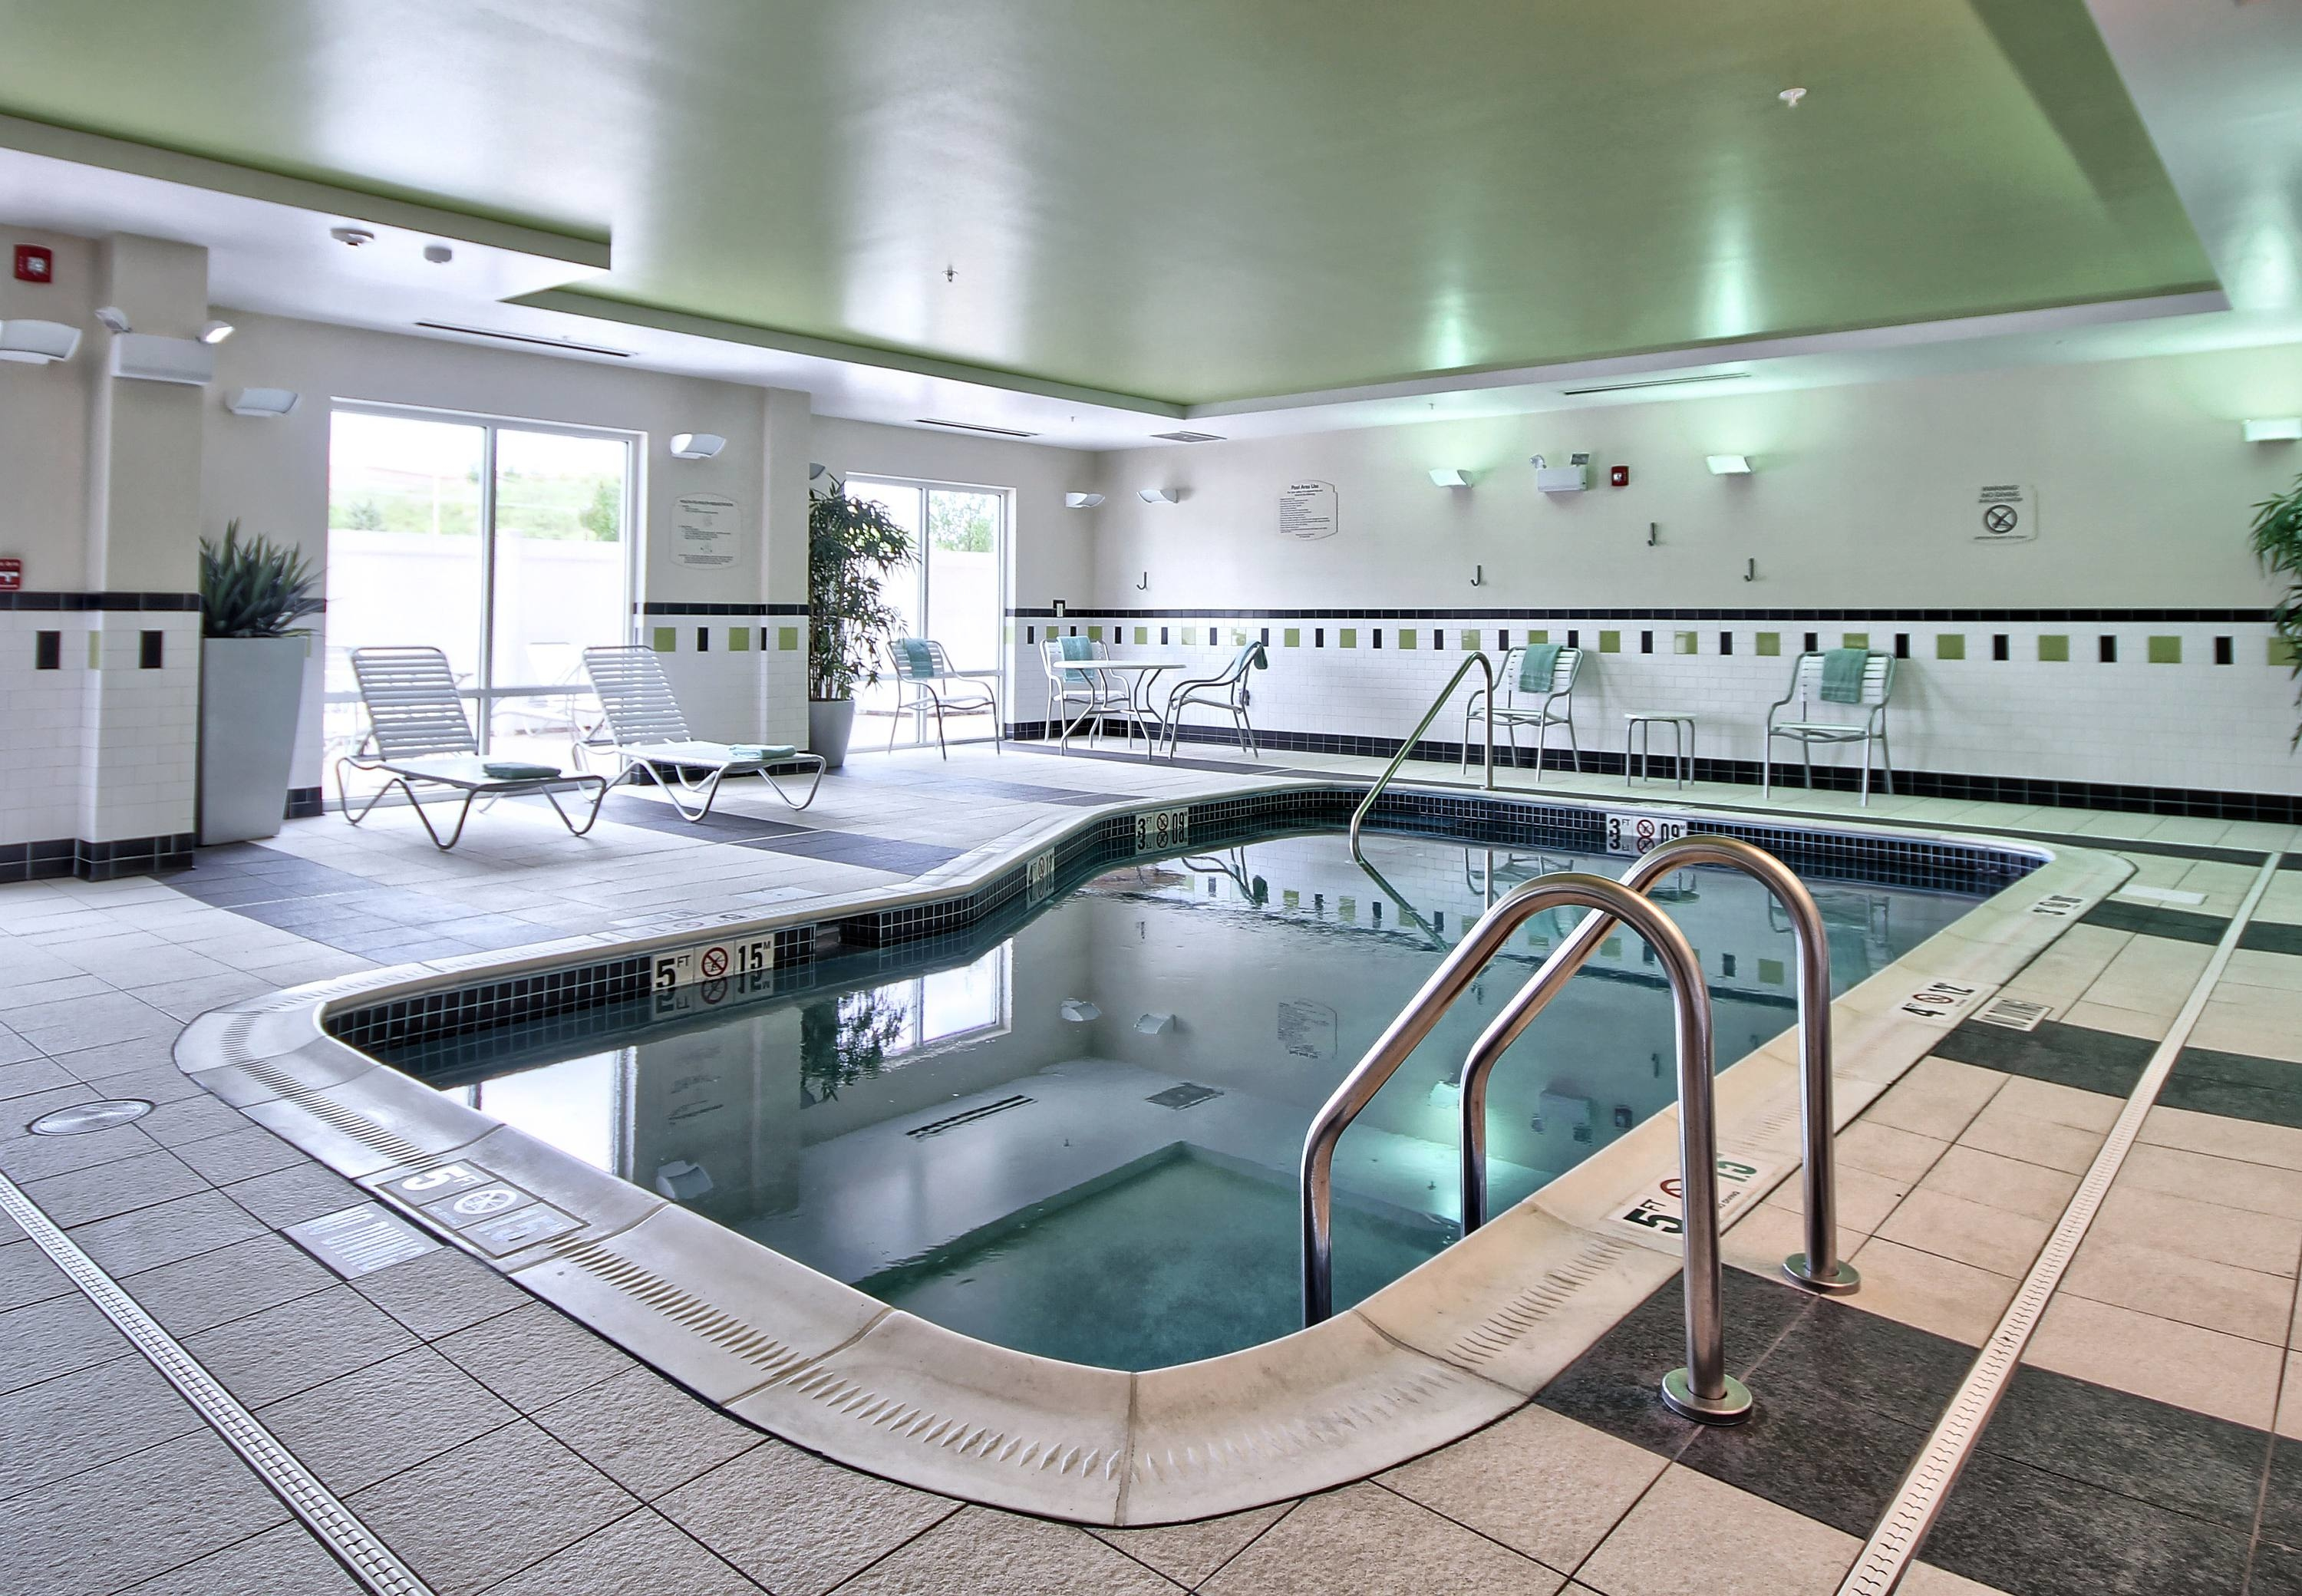 Fairfield Inn & Suites by Marriott Huntingdon Route 22/Raystown Lake image 7